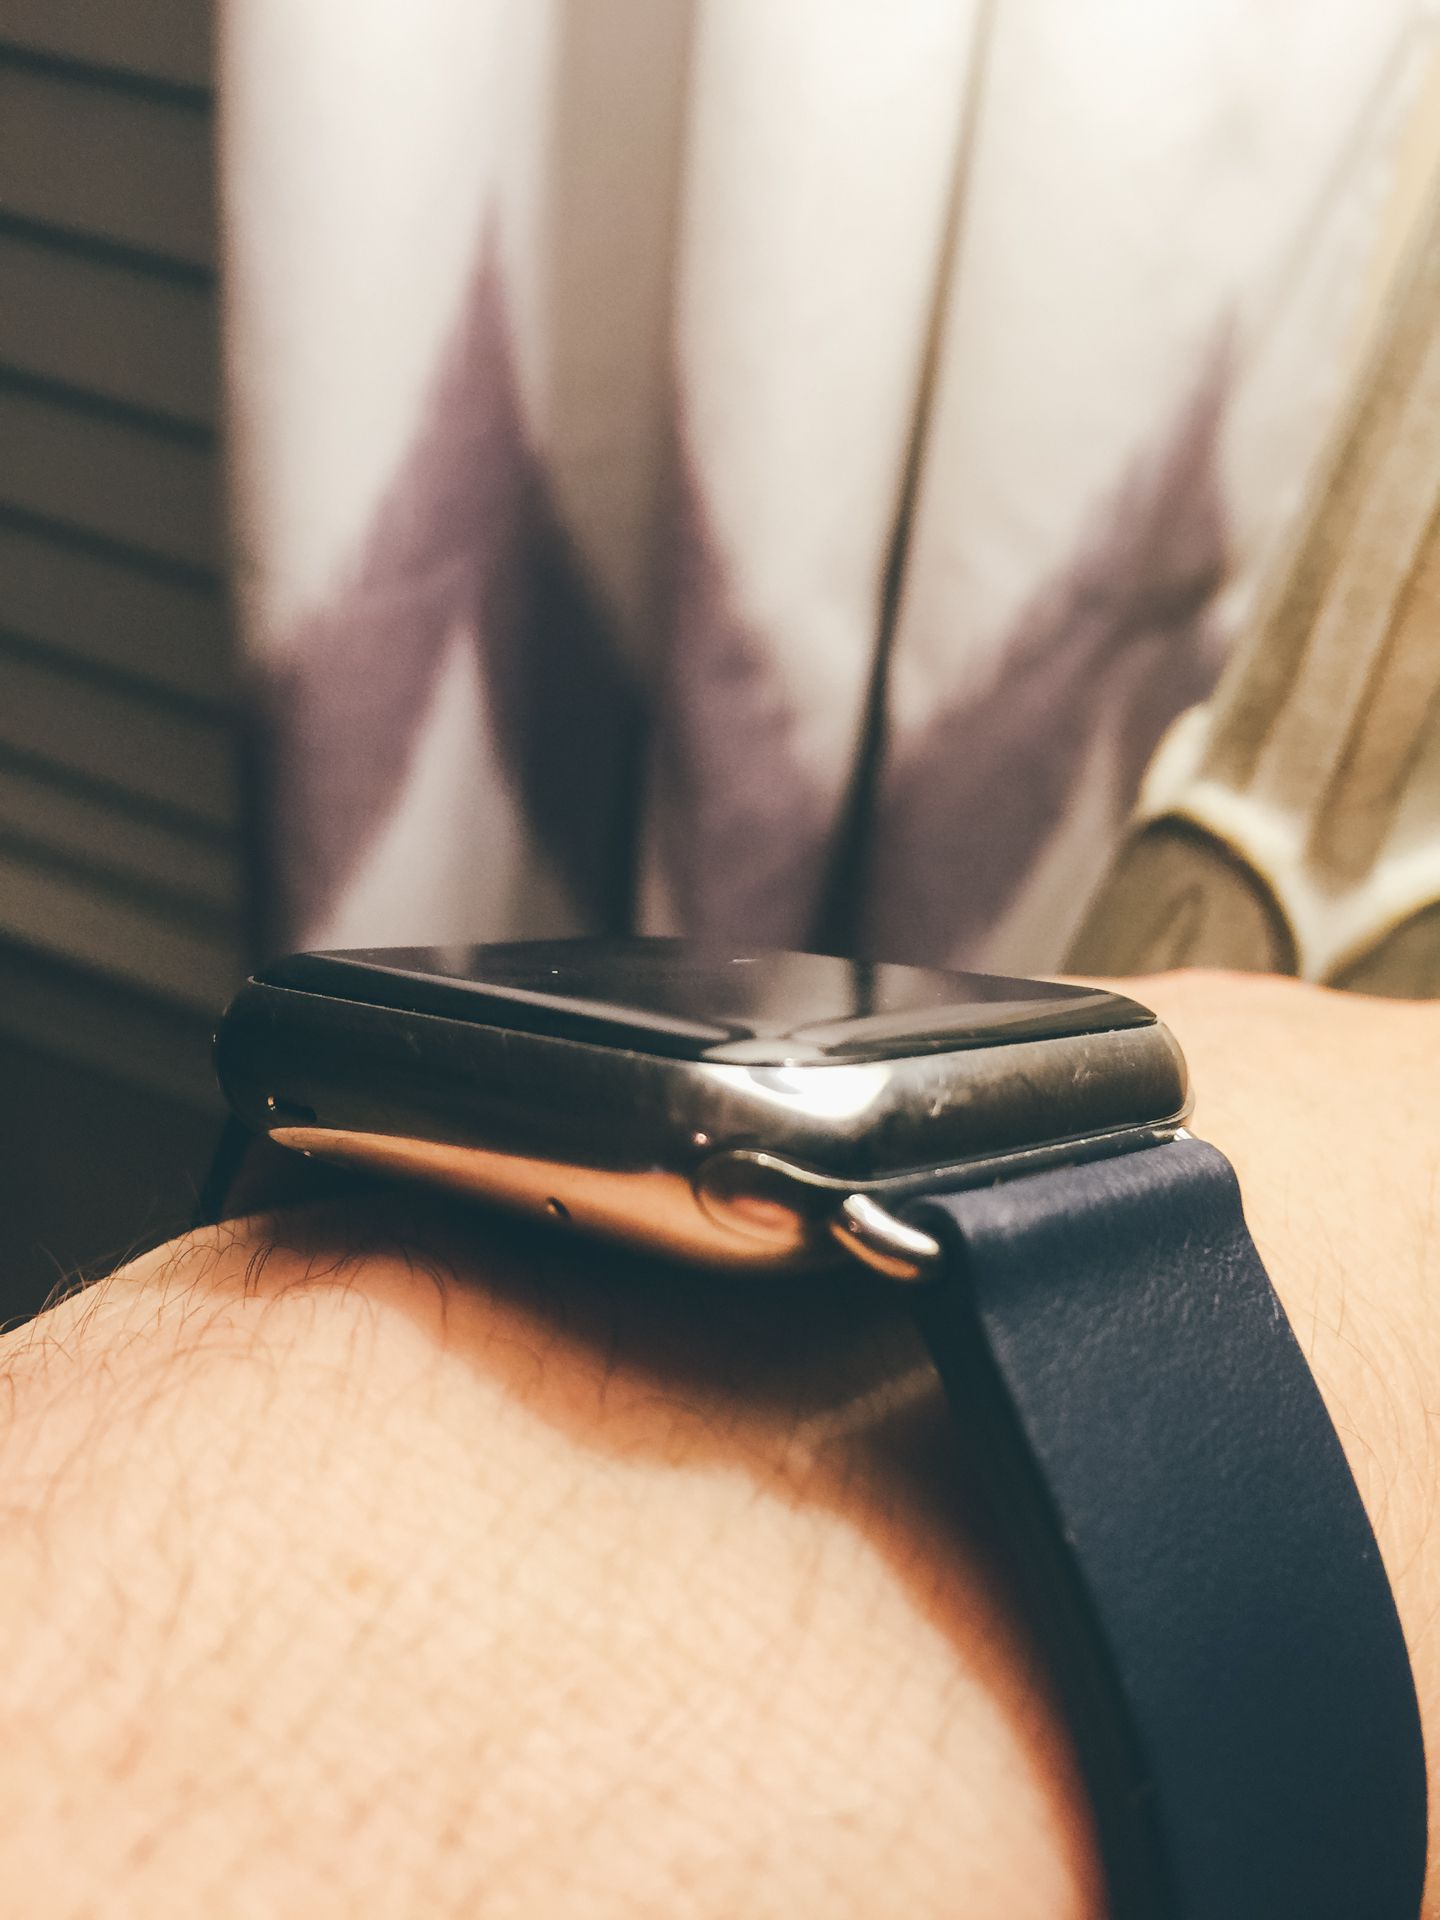 The leather band is extremely comfortable and comes in multiple colors.